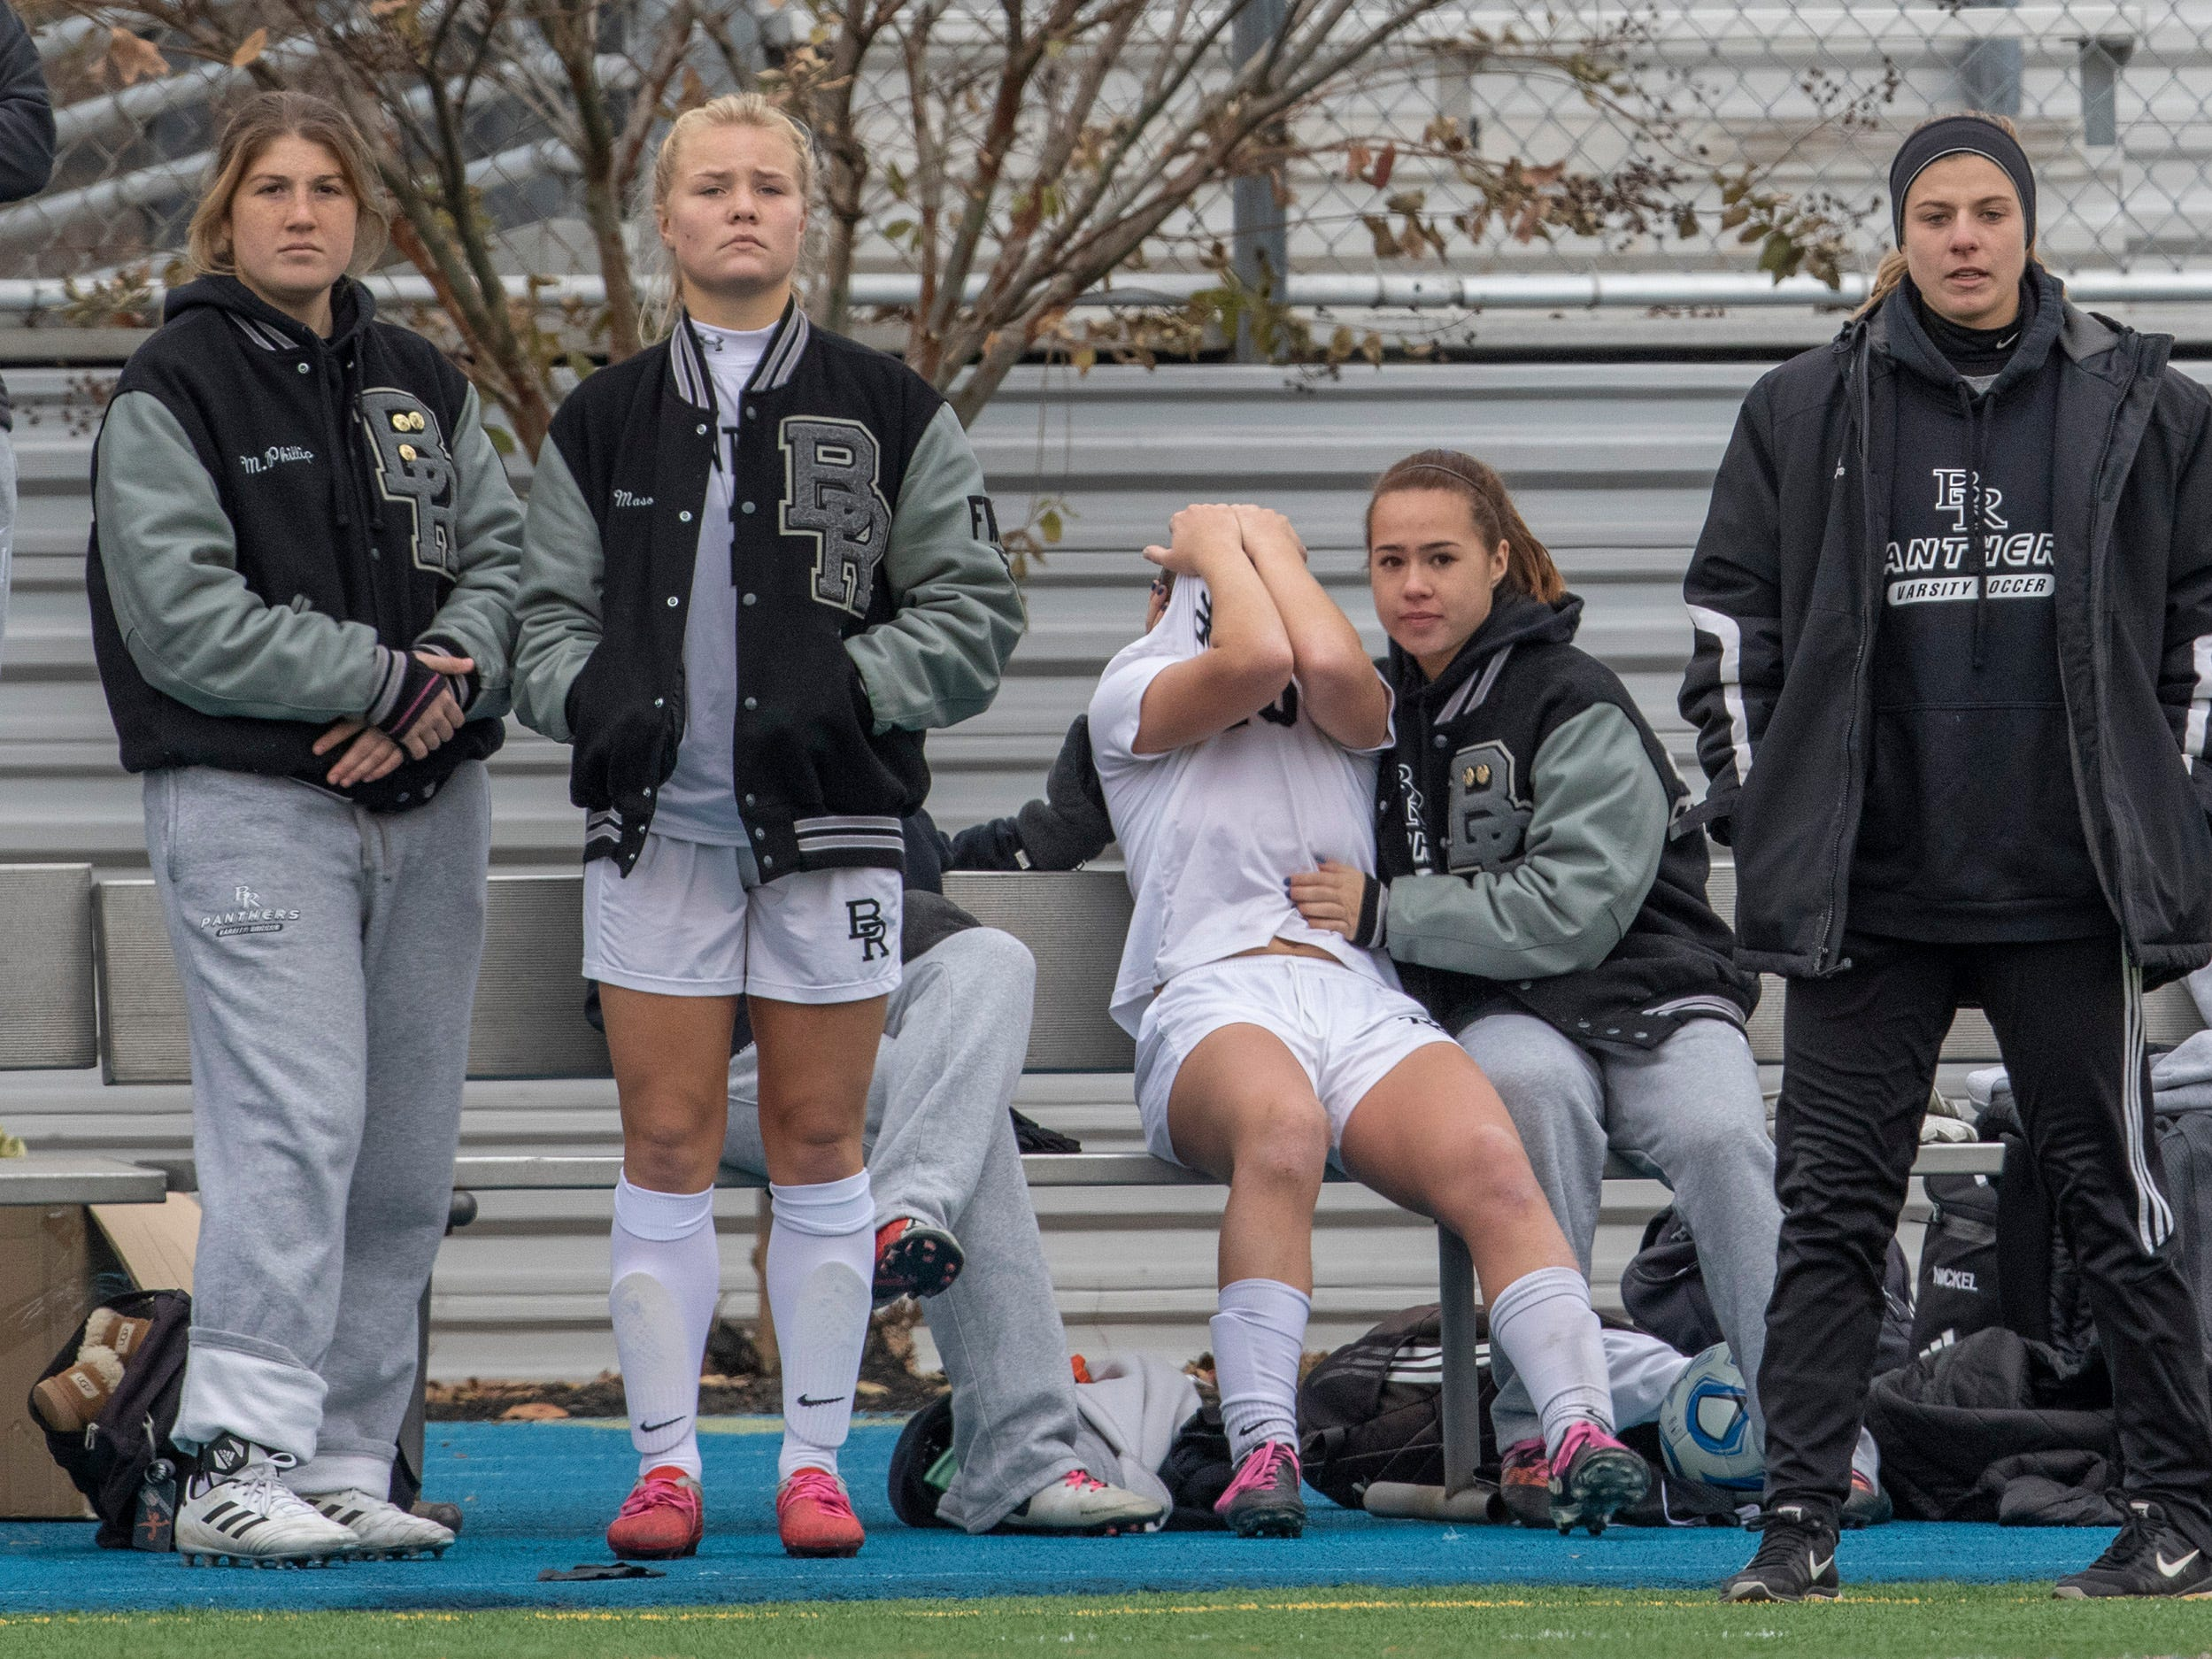 An upset Allison Lynch hides her face because she can't play after being injured. Bridgewater-Raritan vs. Eastern girls soccer in the NJSIAA Group IV final at Kean University.